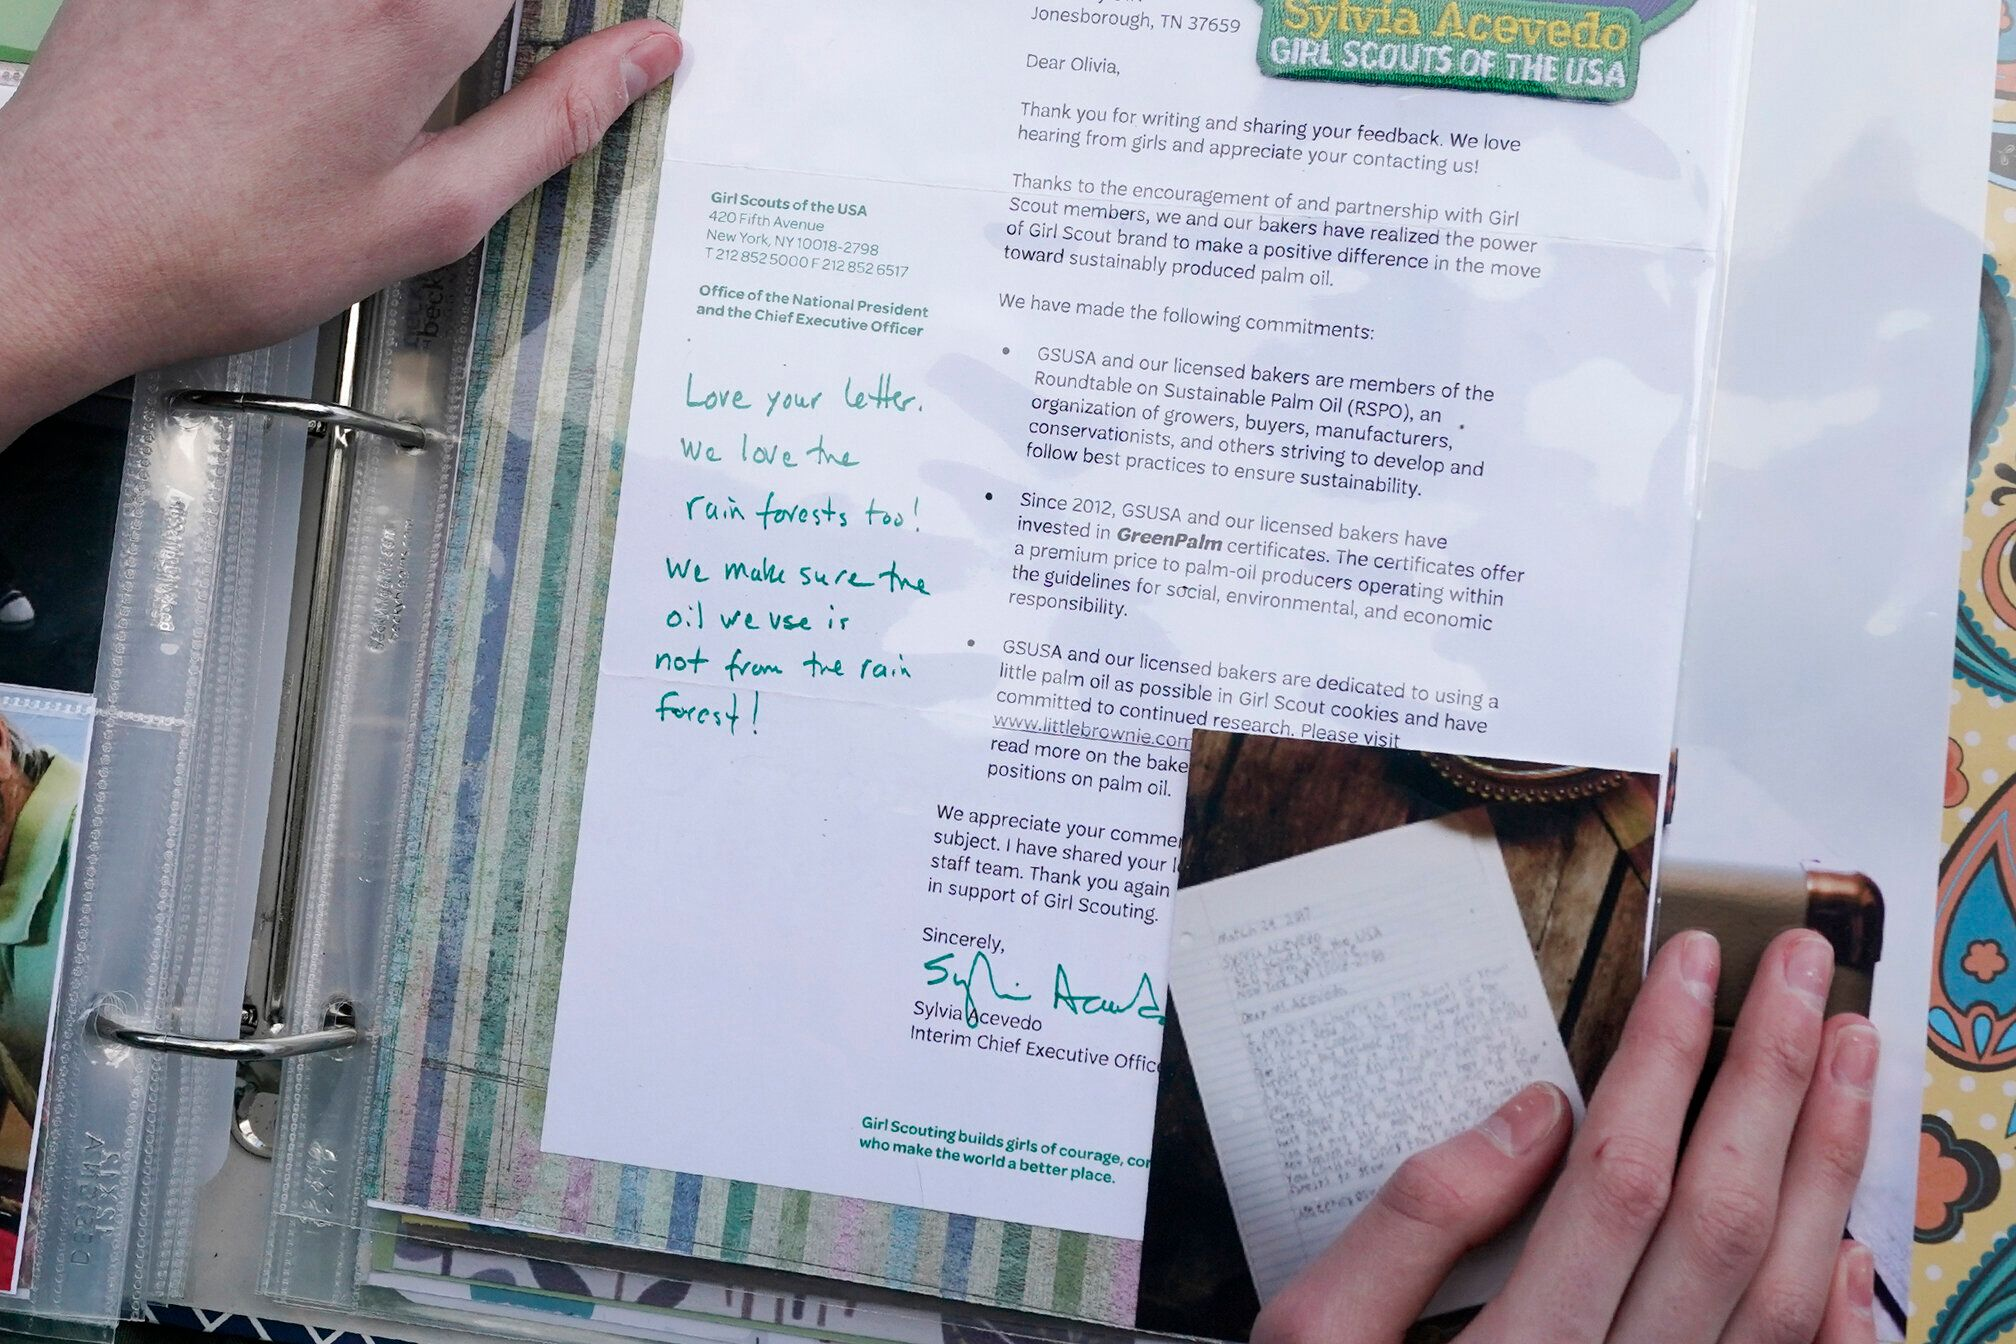 Olivia Chaffin displays a 2017 response she received from the chief executive officer of the Girl Scouts to her concerns with